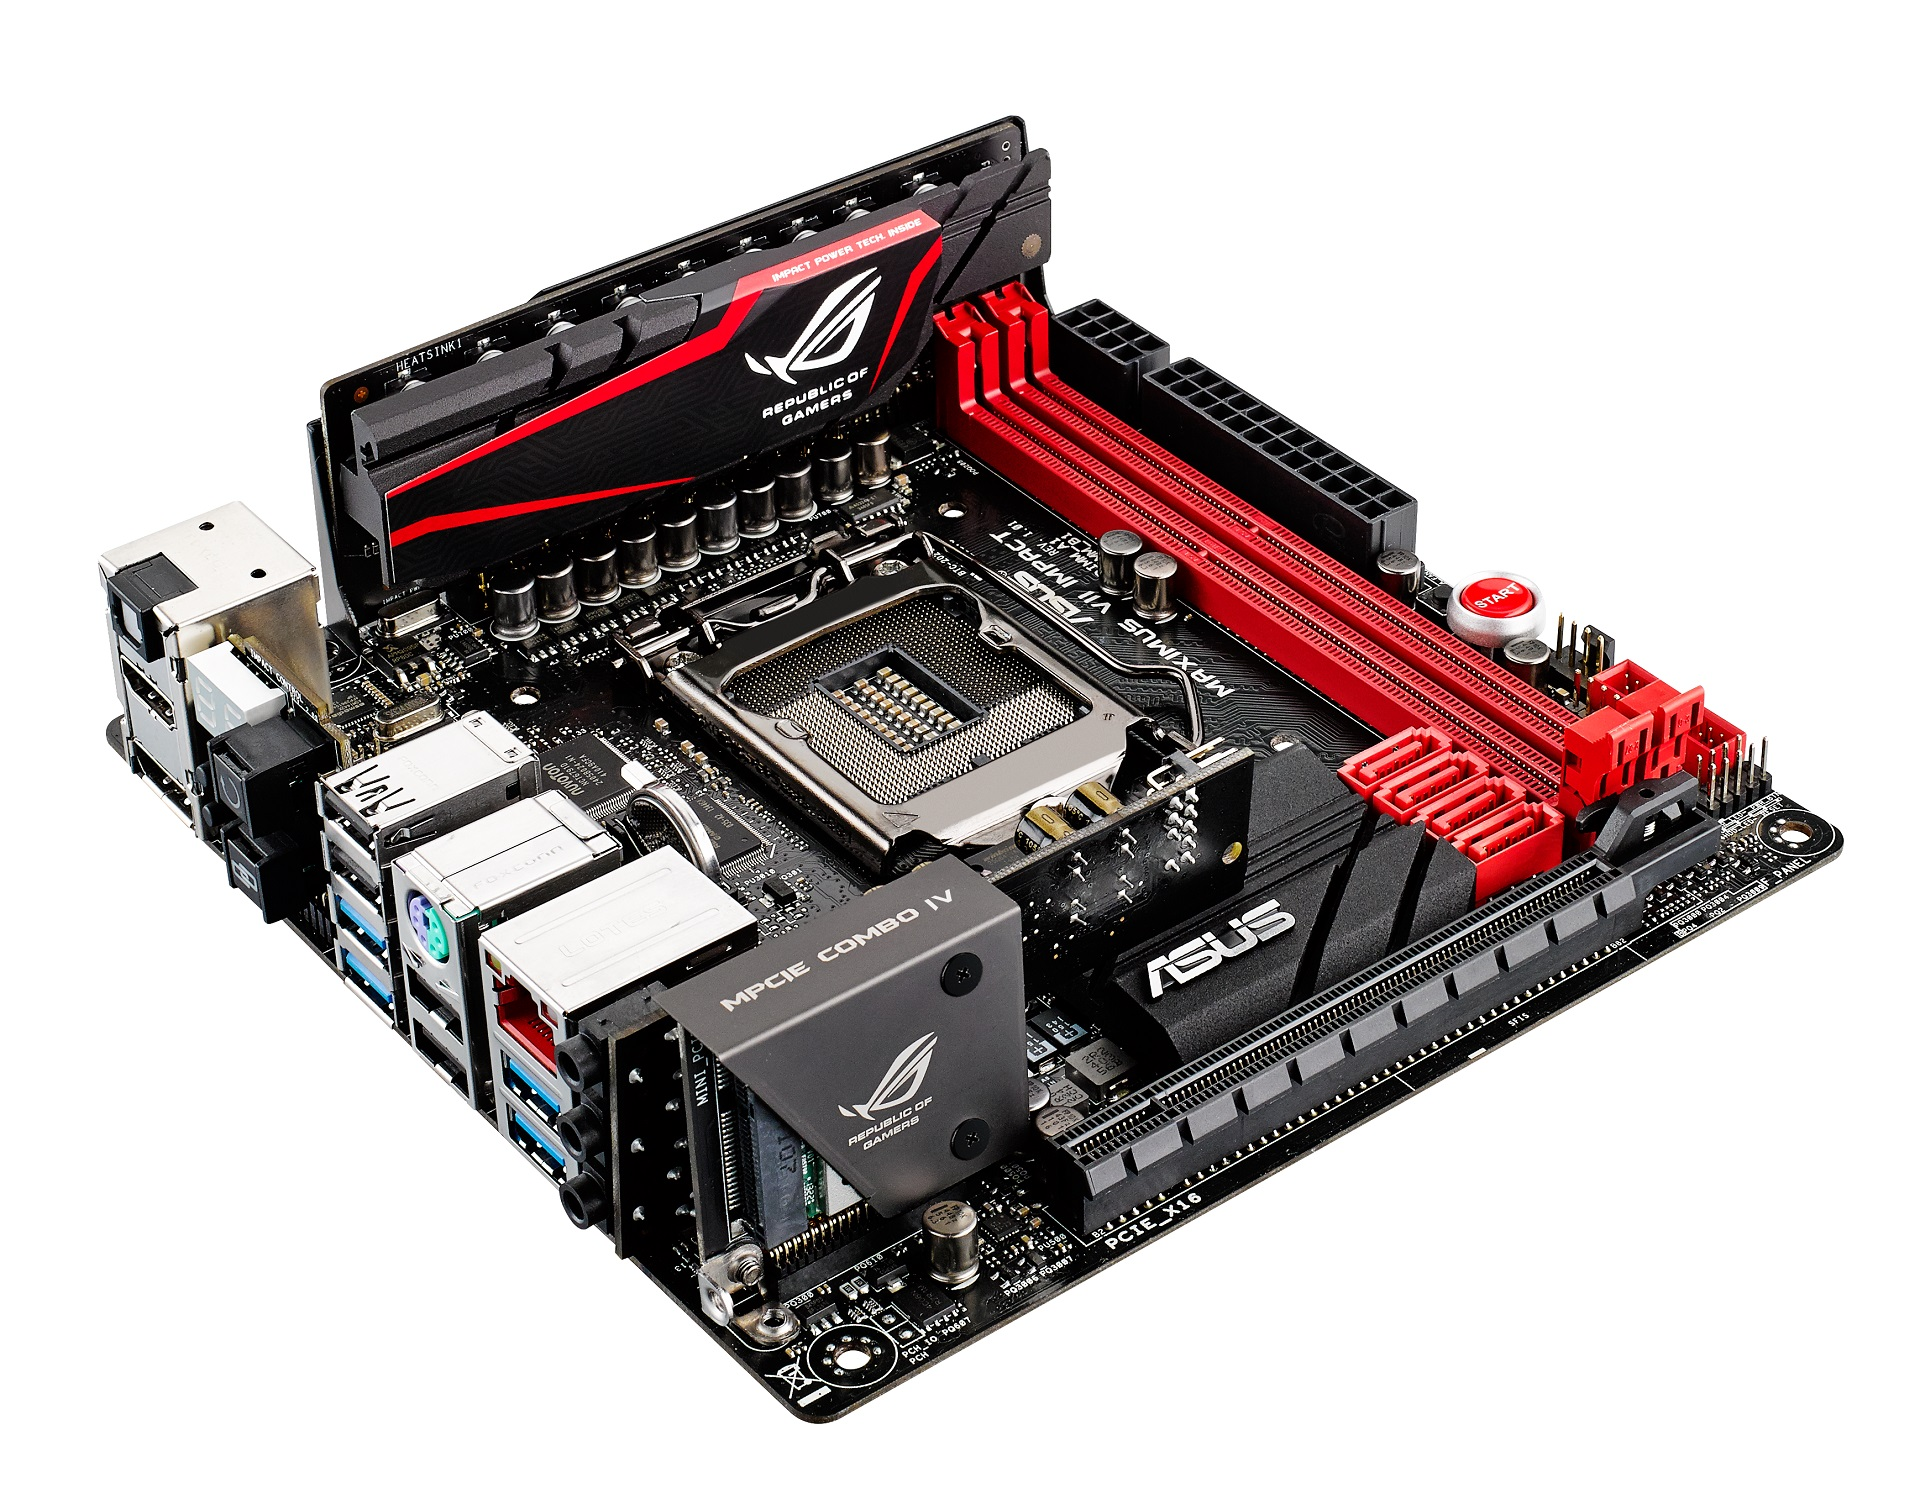 Best Z97 Motherboard Between 120 And 160